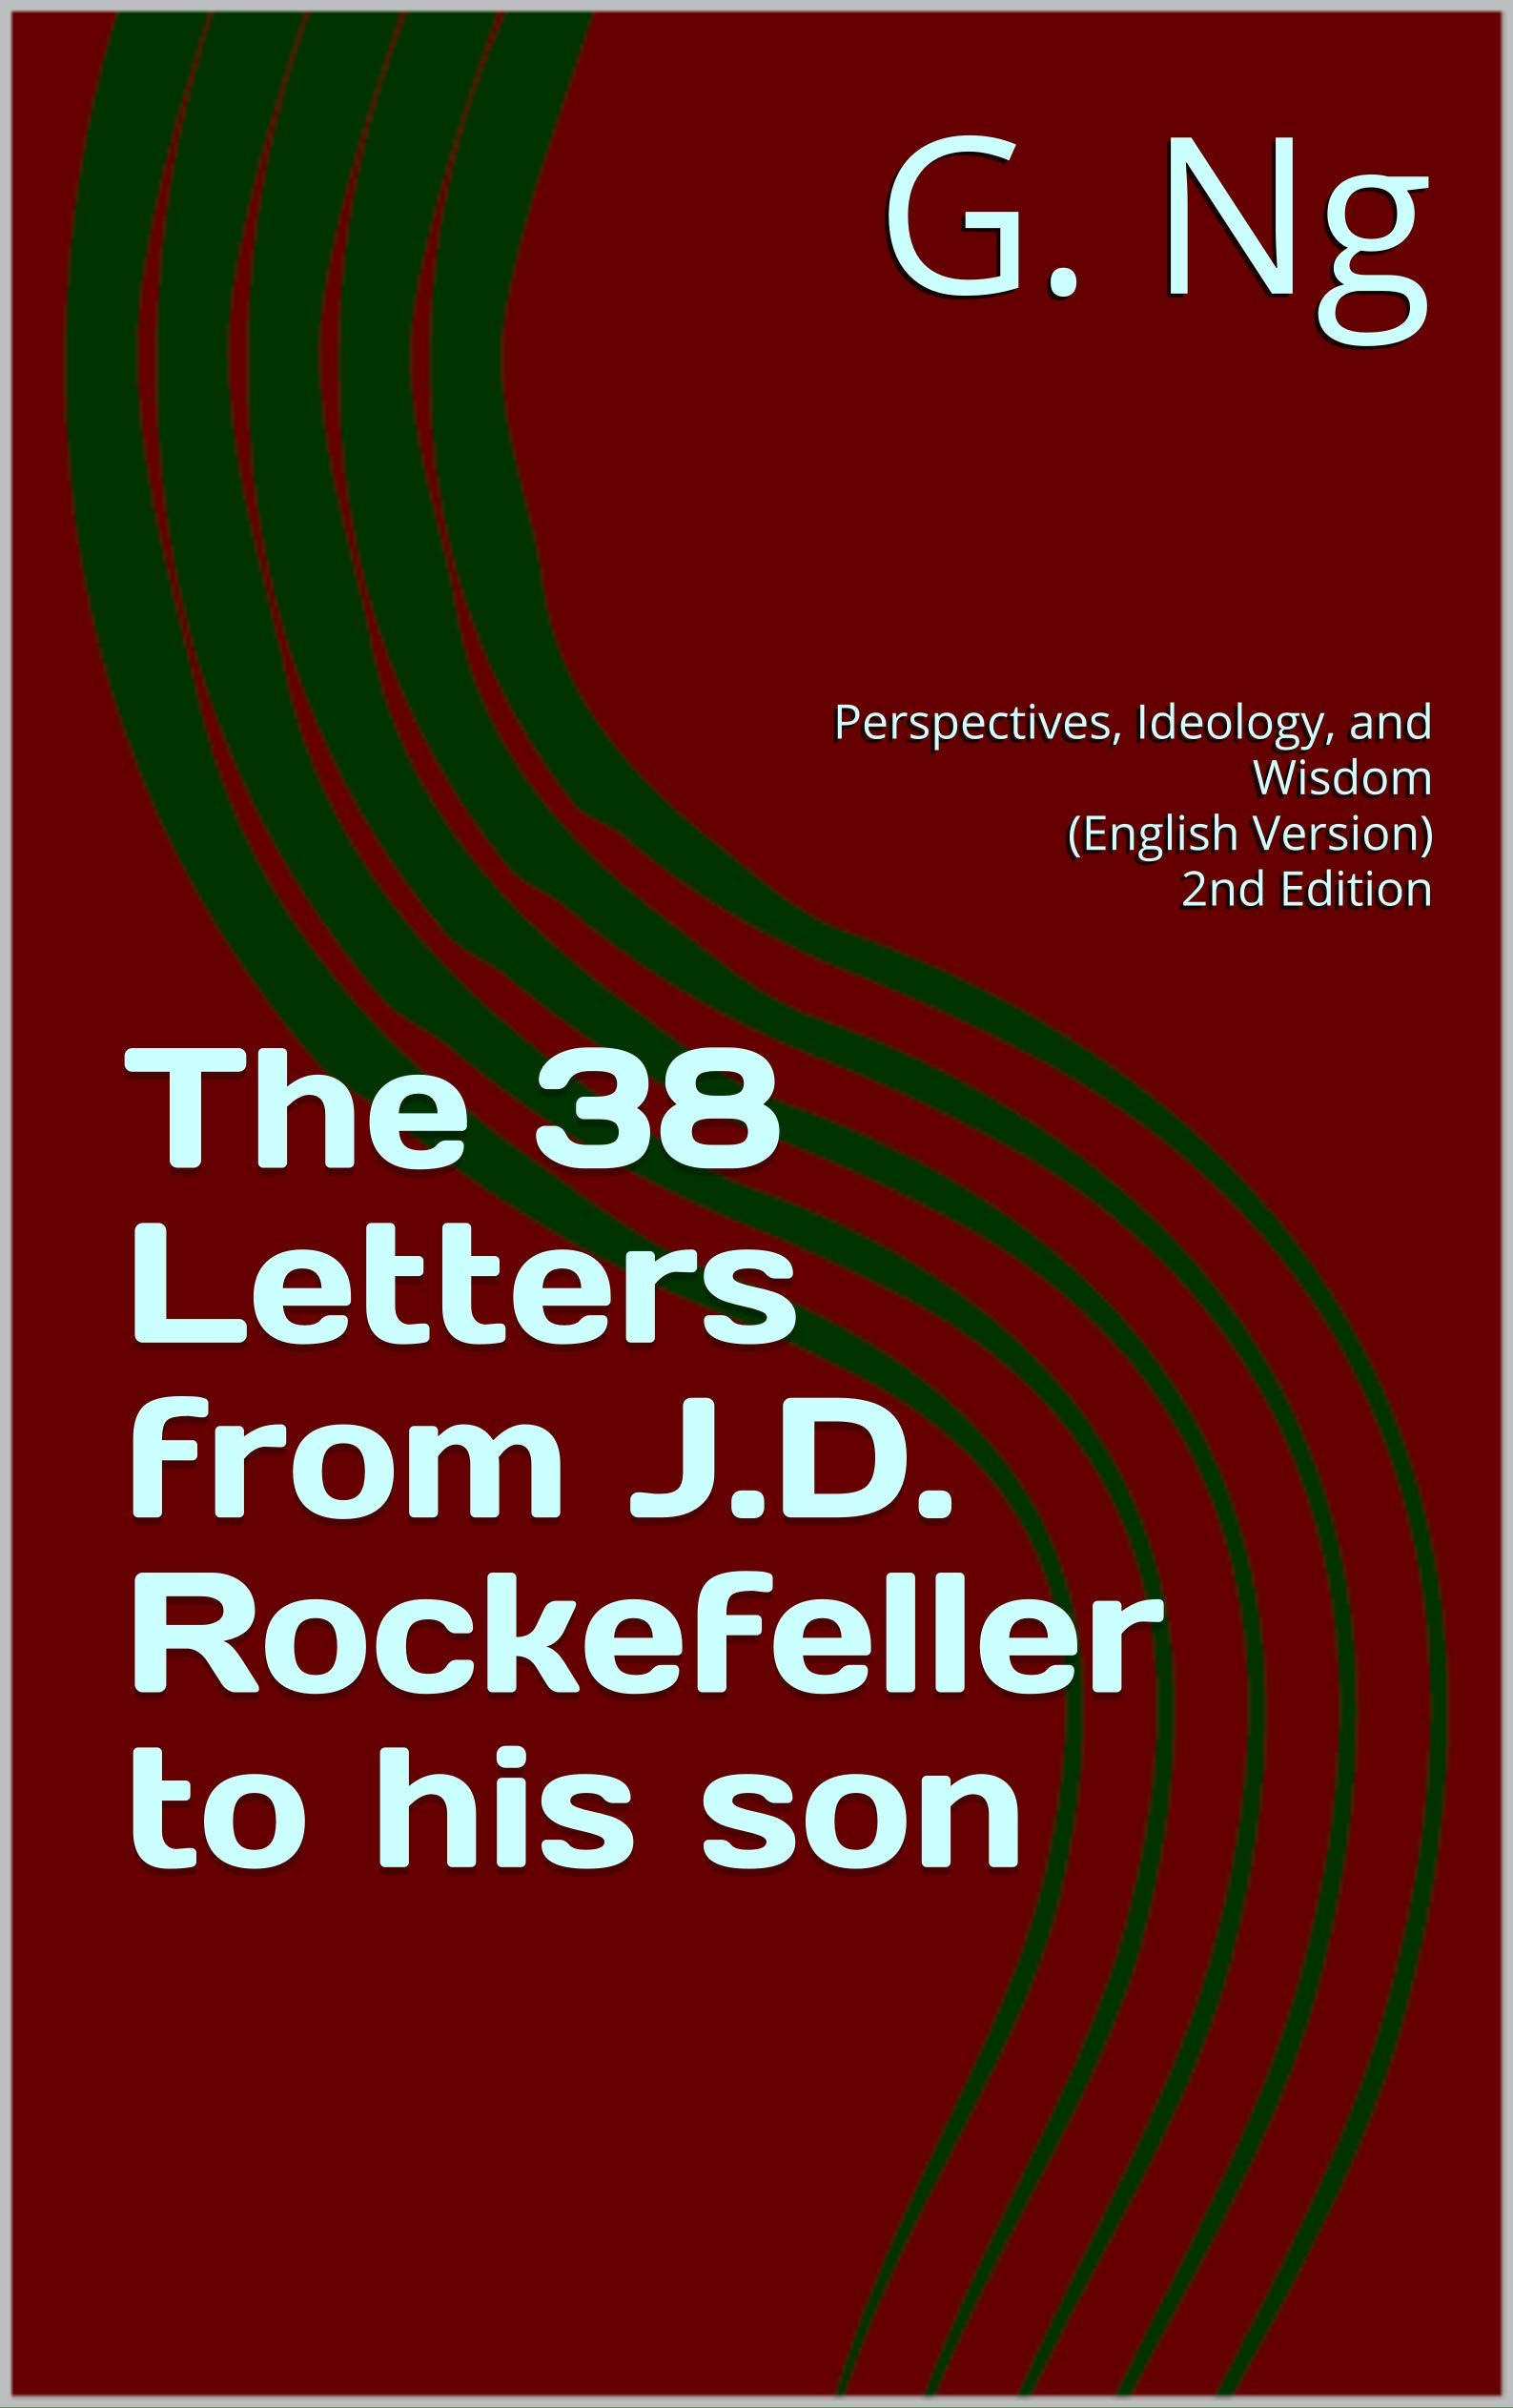 The 38 Letters from J.D. Rockefeller to his son: Perspectives, Ideology, and Wisdom (English Version) 2nd Edition